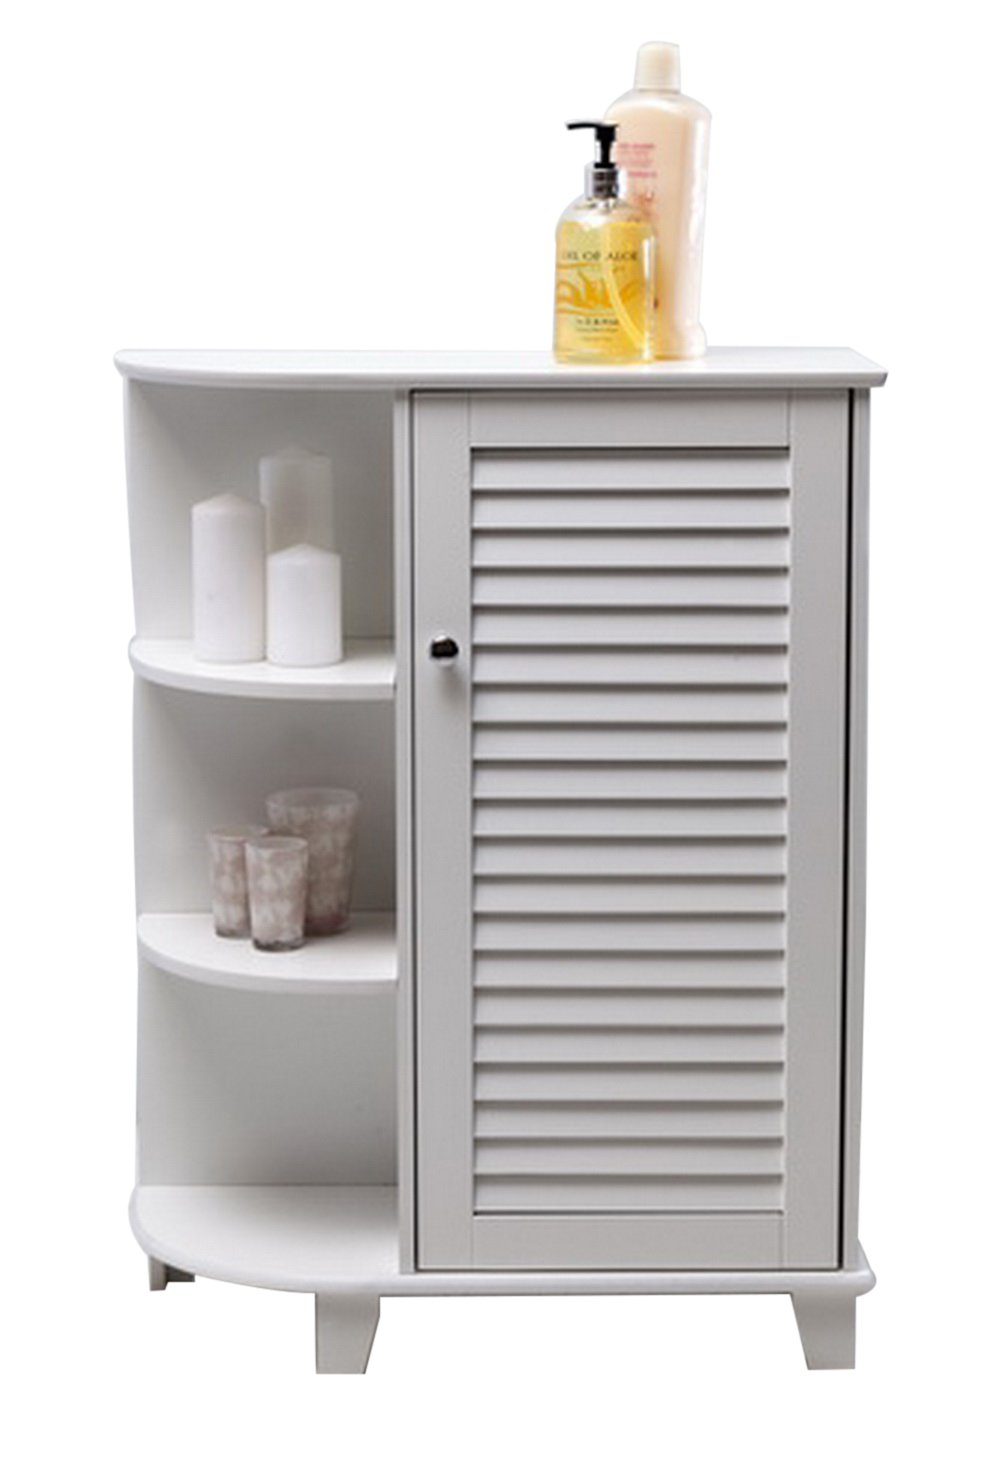 3 tier bathroom storage unit compact corner shelf bathroom for Floor standing corner bathroom cabinet